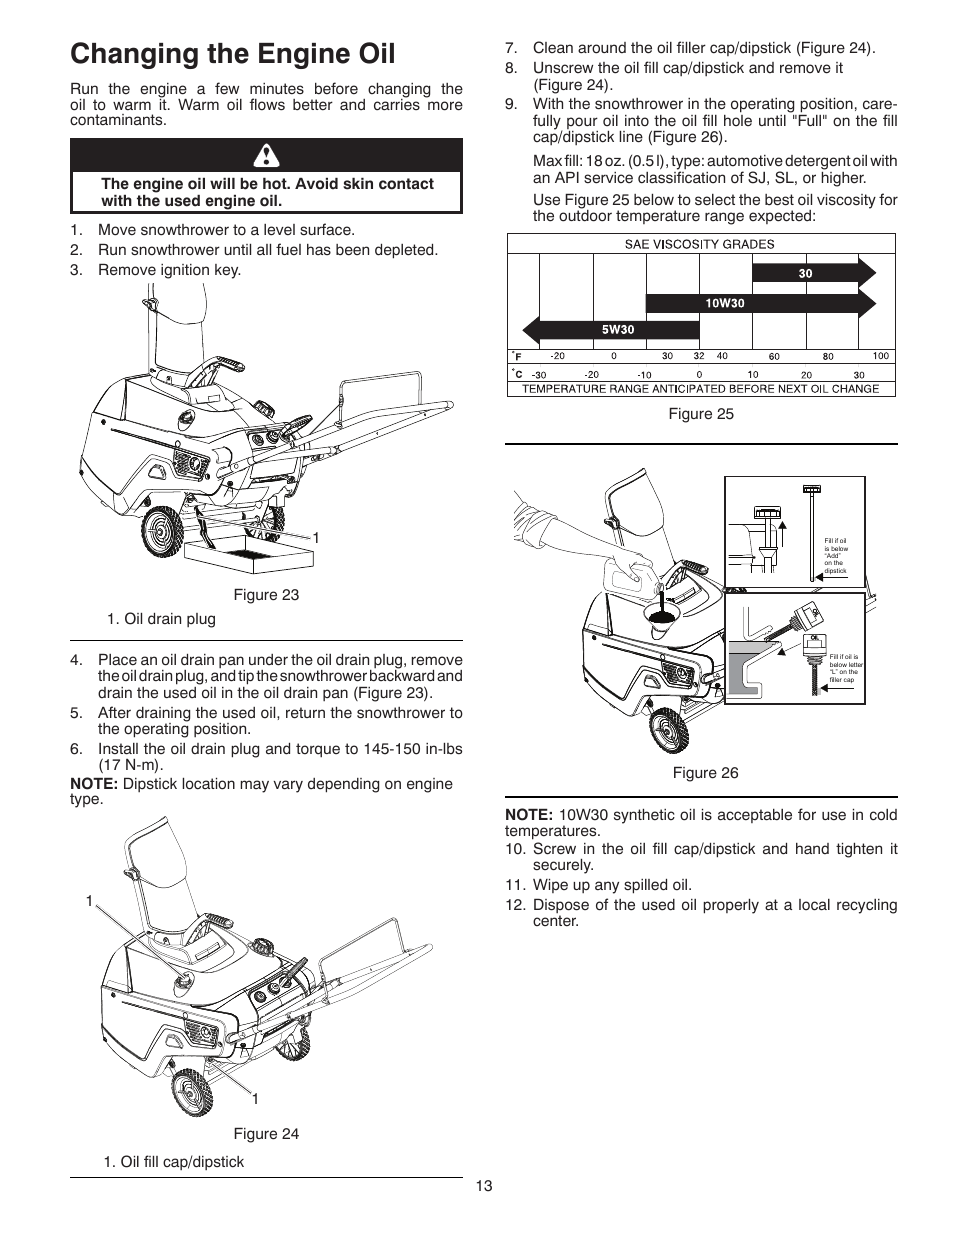 hight resolution of changing the engine oil poulan pro pr621 snow thrower user manual page 13 30